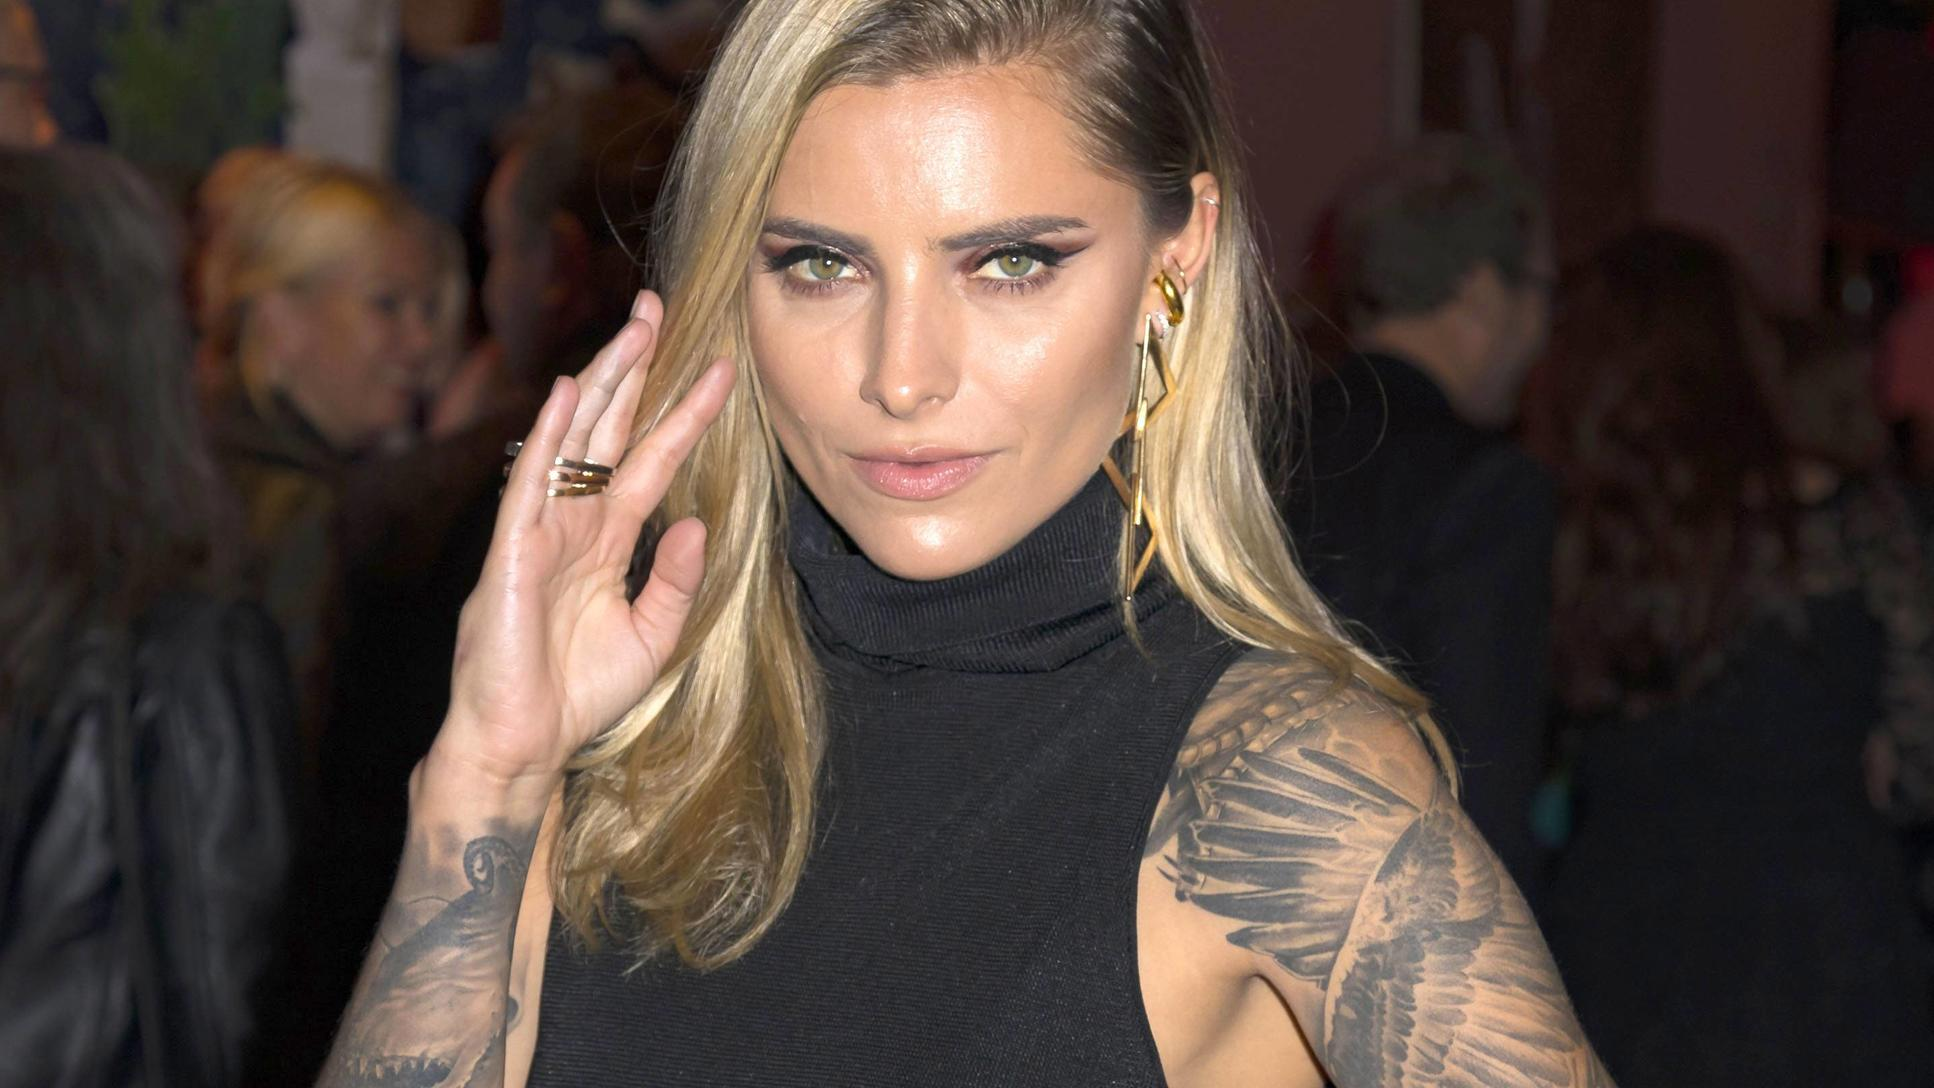 Pictures Sophia Thomalla naked (56 photo), Topless, Sideboobs, Feet, underwear 2020